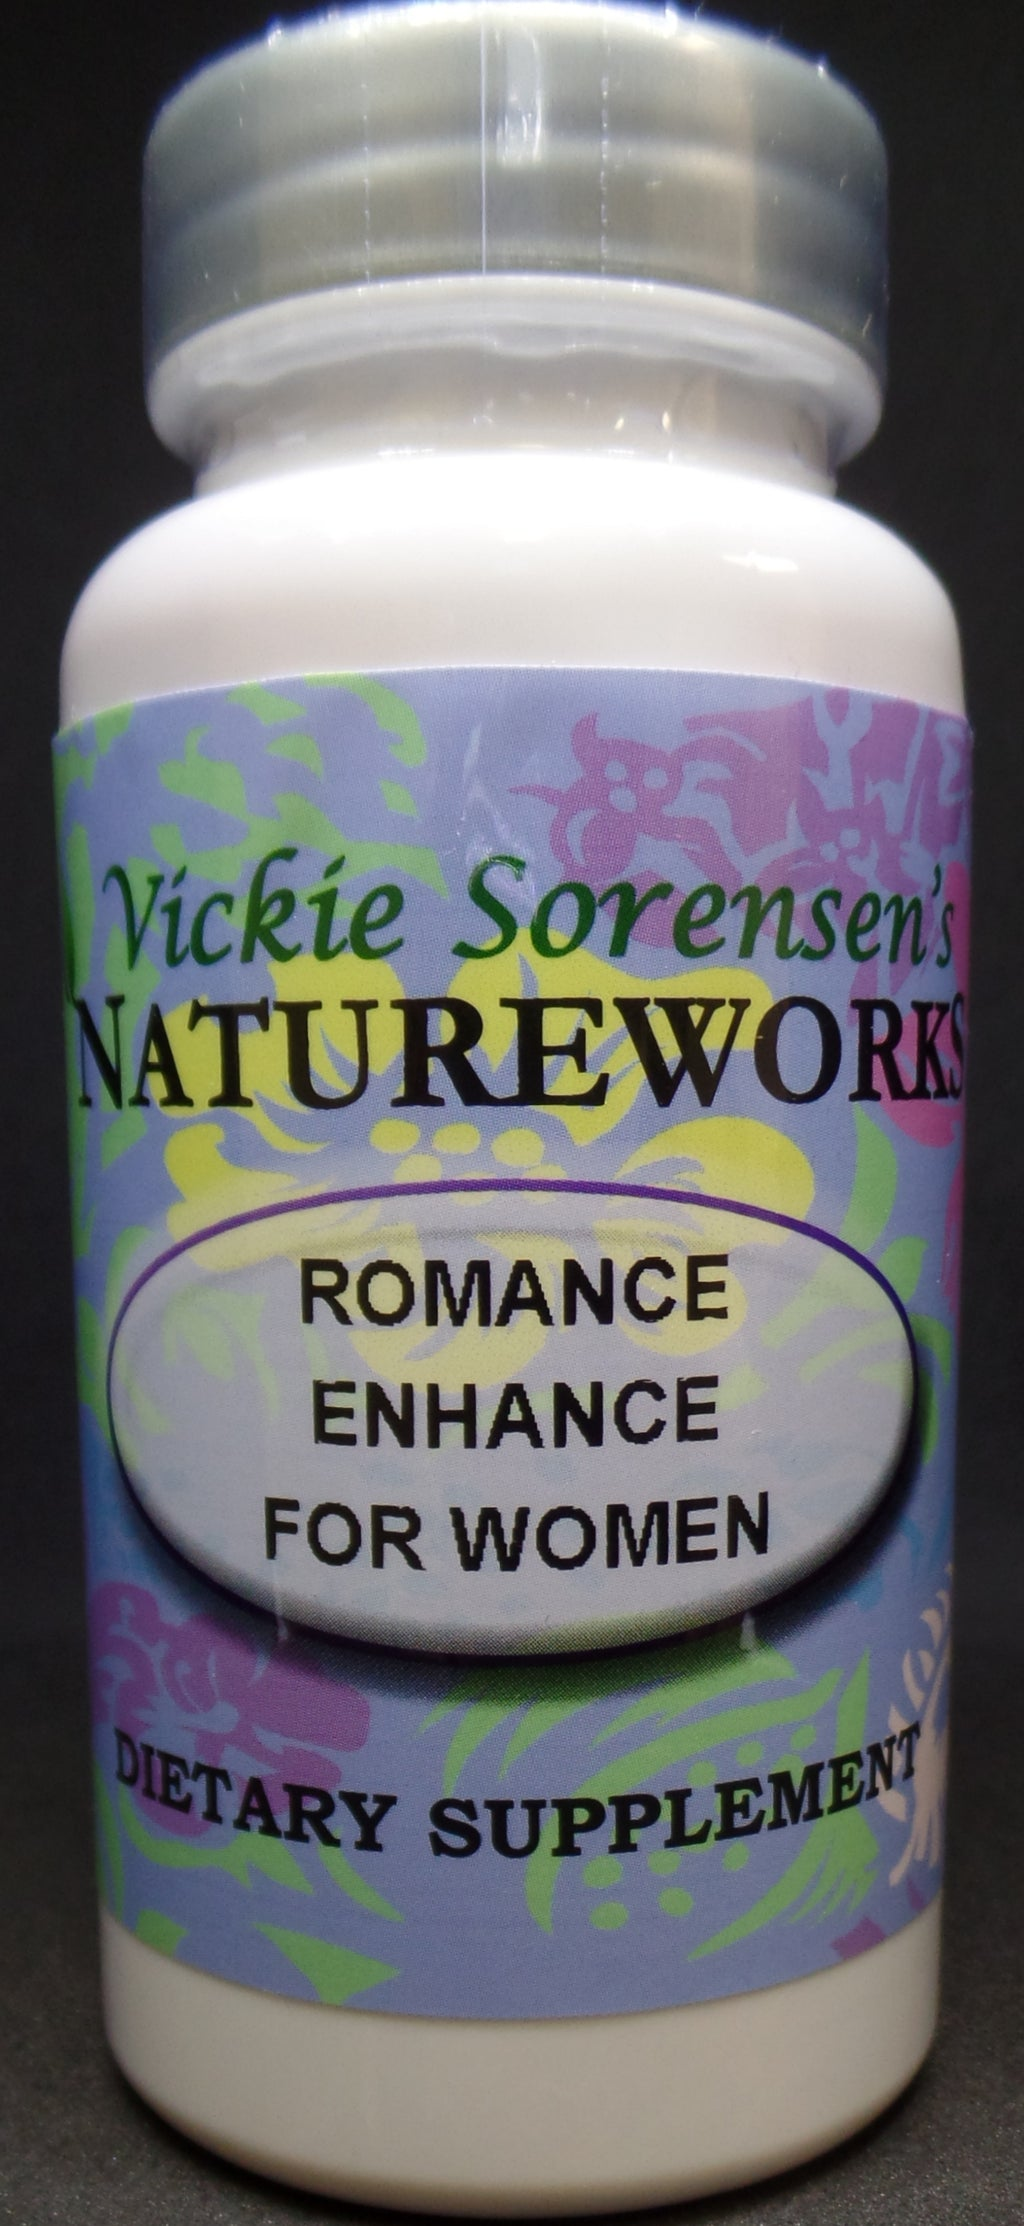 Romance Enhance For Women